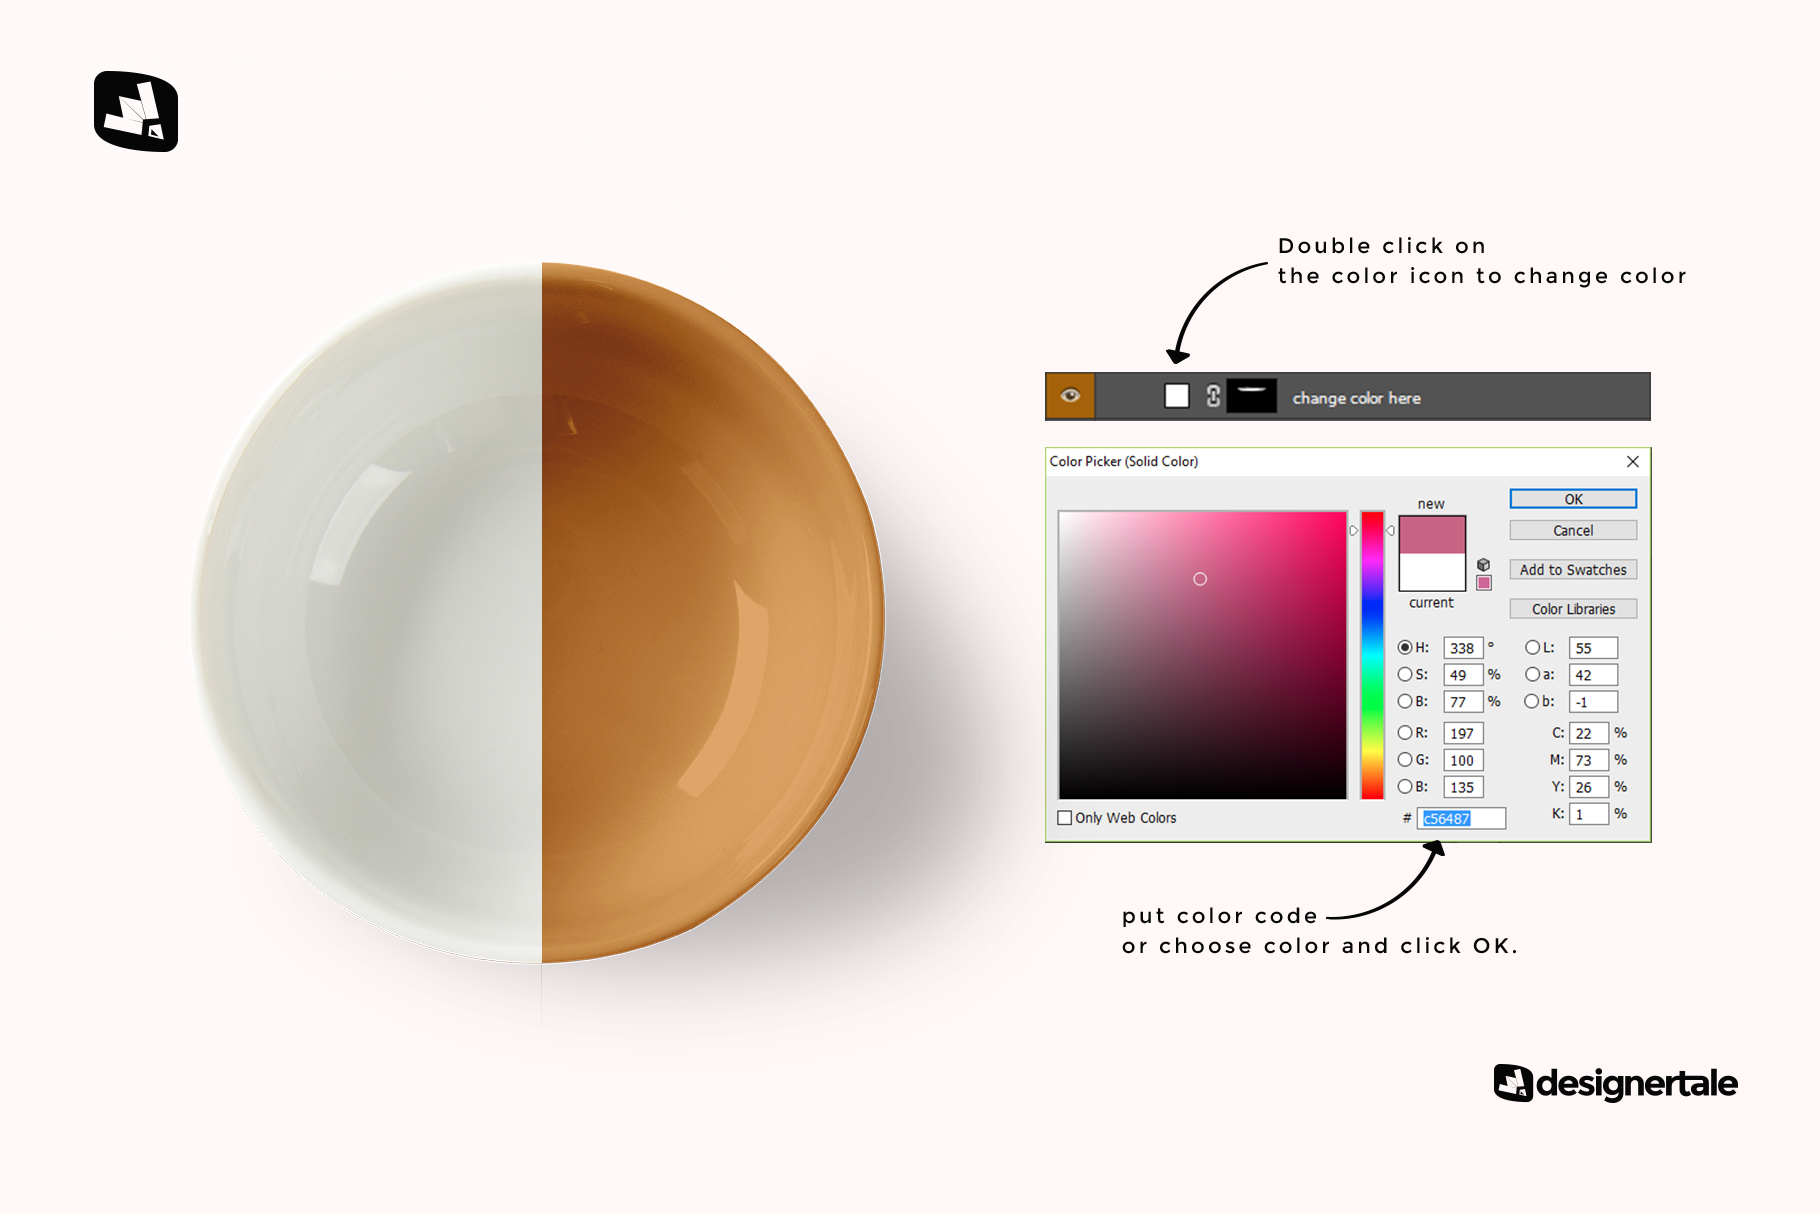 how to change color of the top view deep ceramic bowl mockup